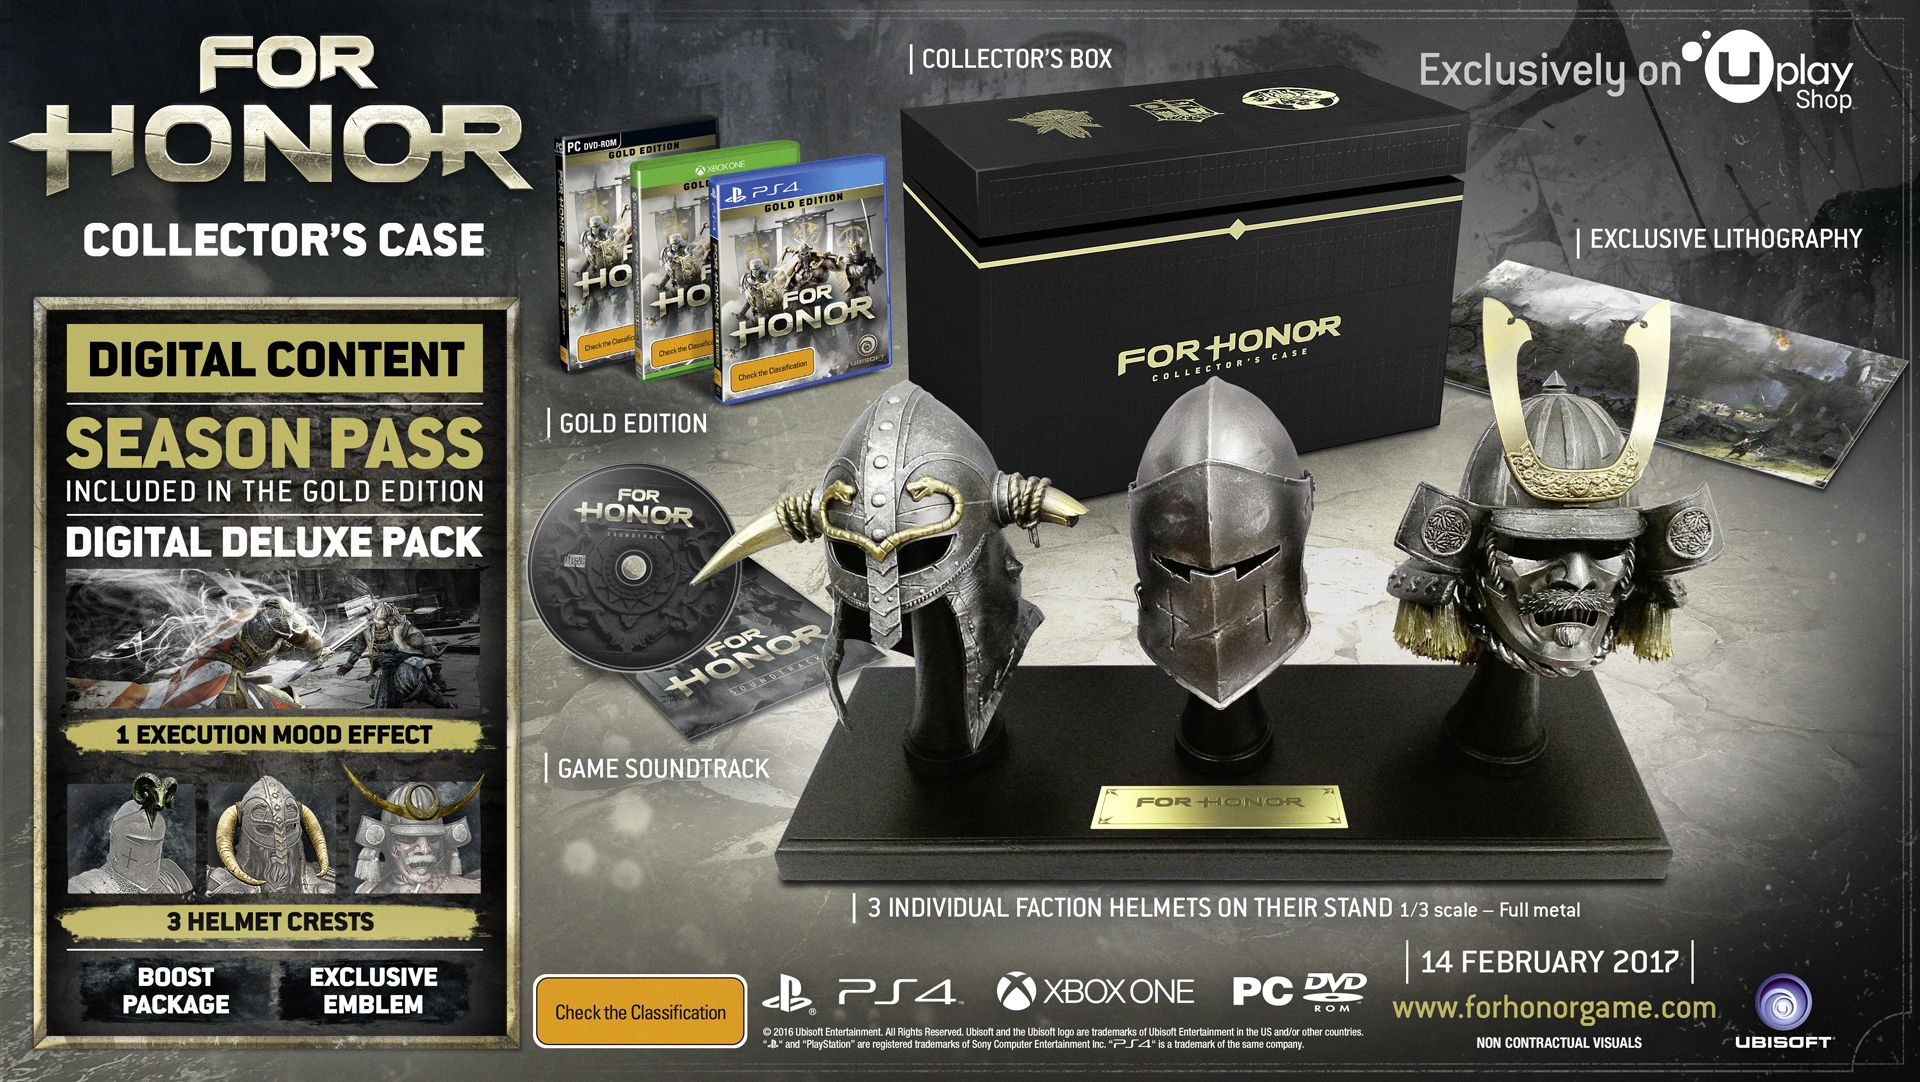 For Honor Reveals Collector's Case & Exclusive Costumes For